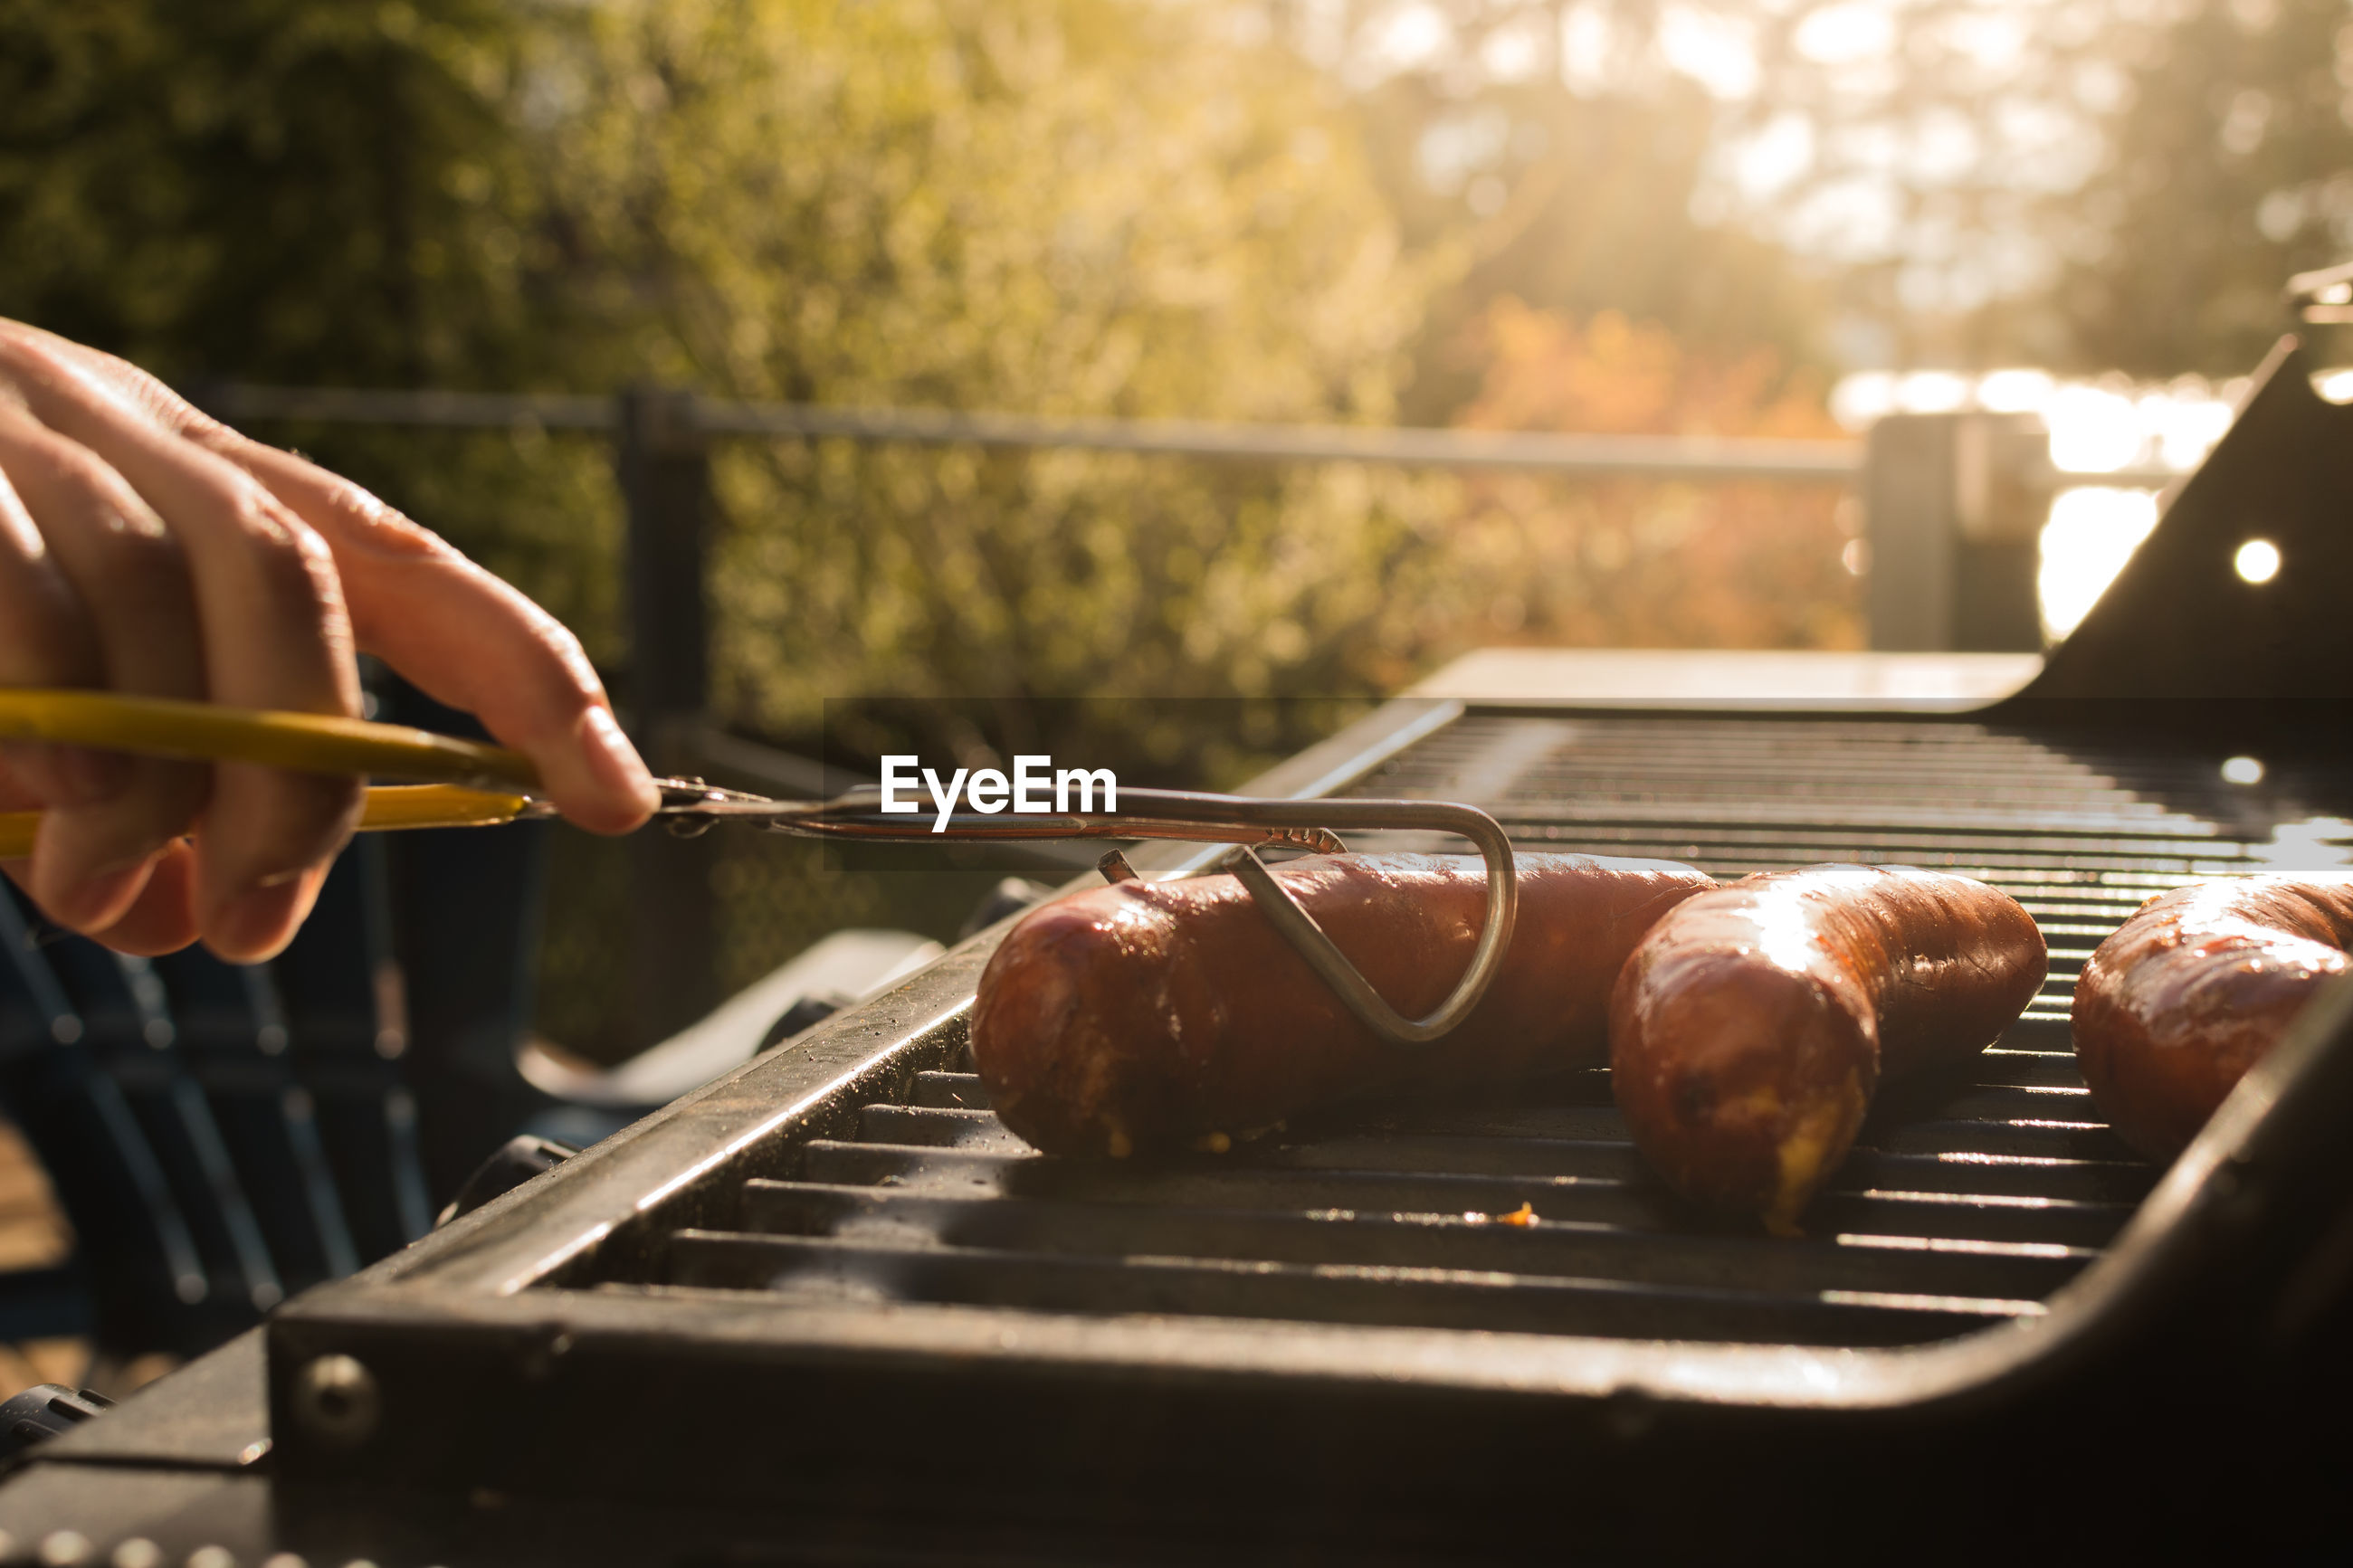 Close-up of hand grilling sausages